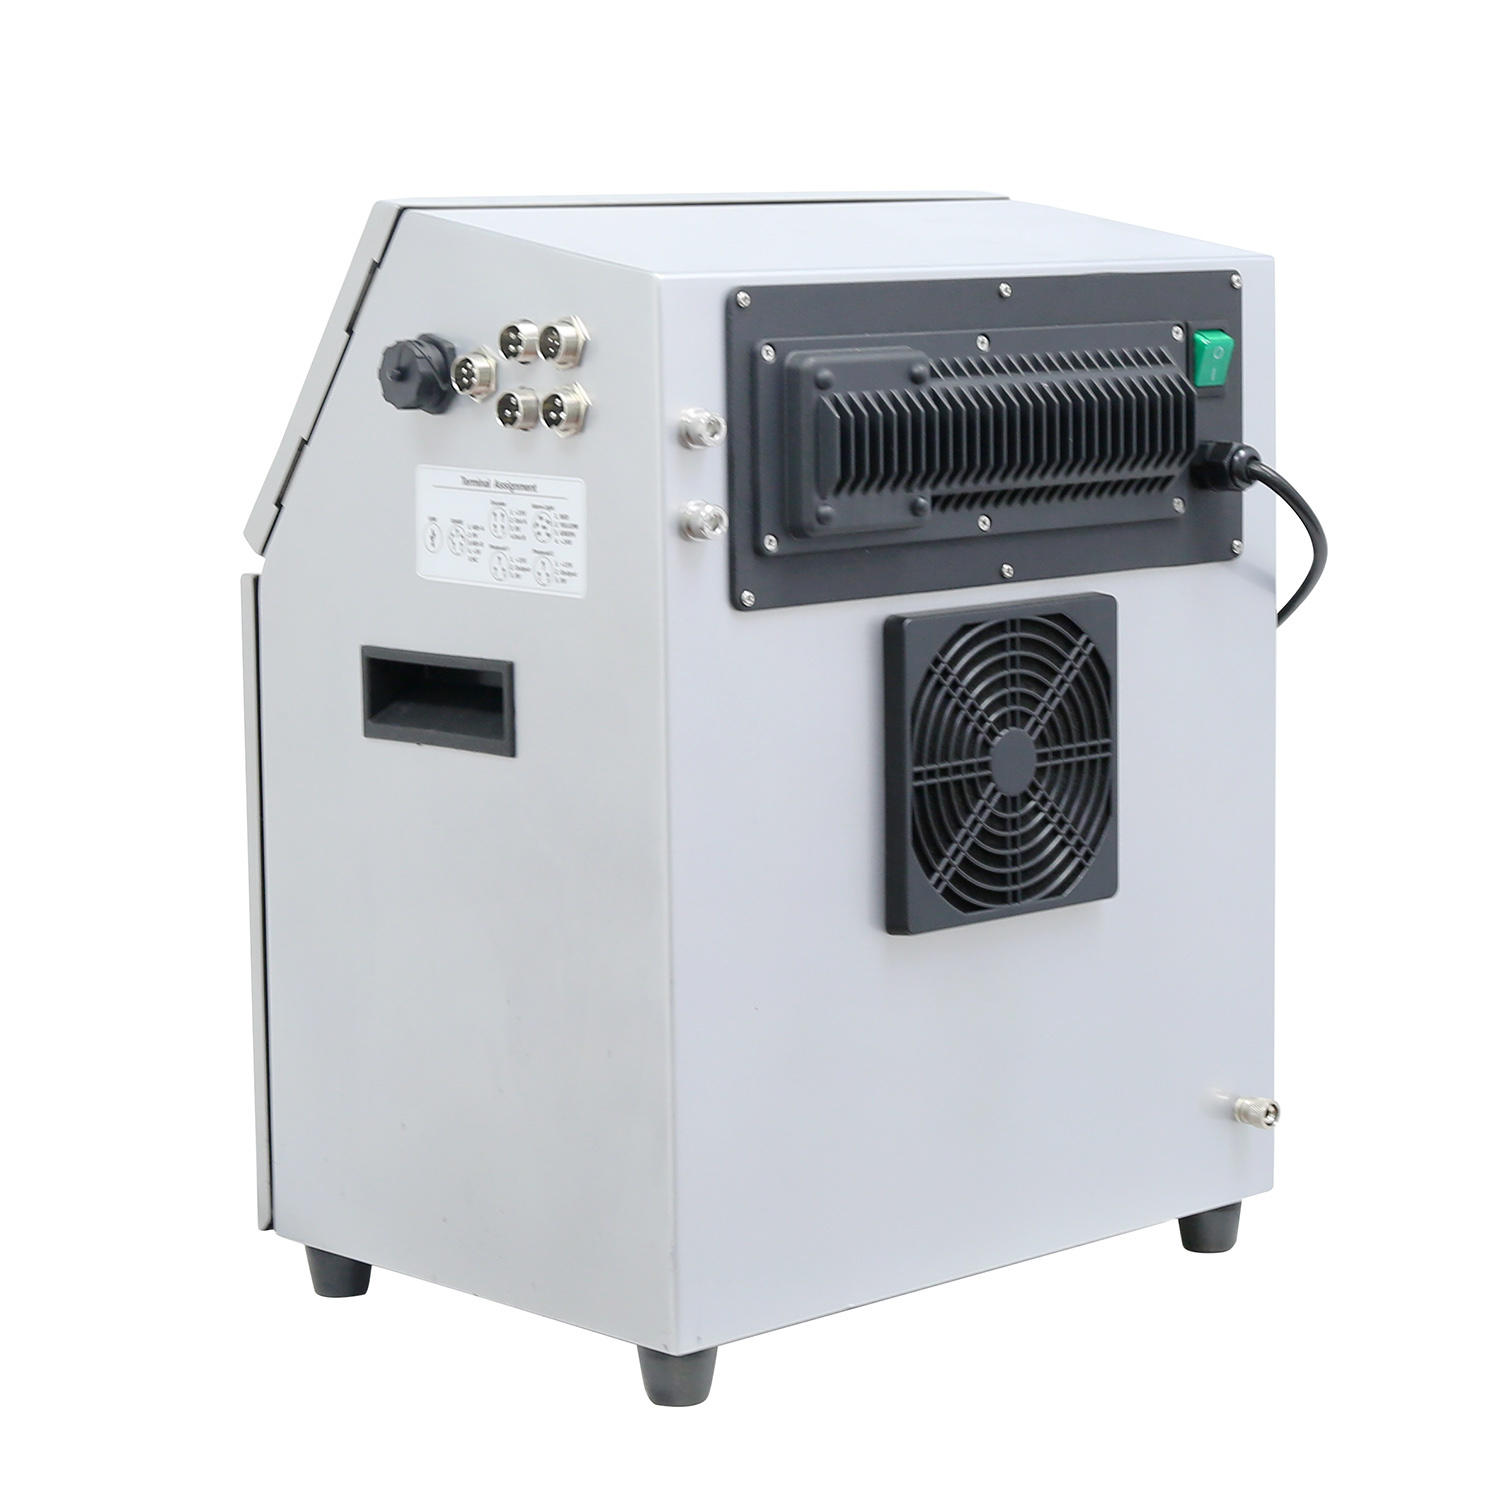 Leadtech Lt800 Industrial Color Inkjet Printer Machine